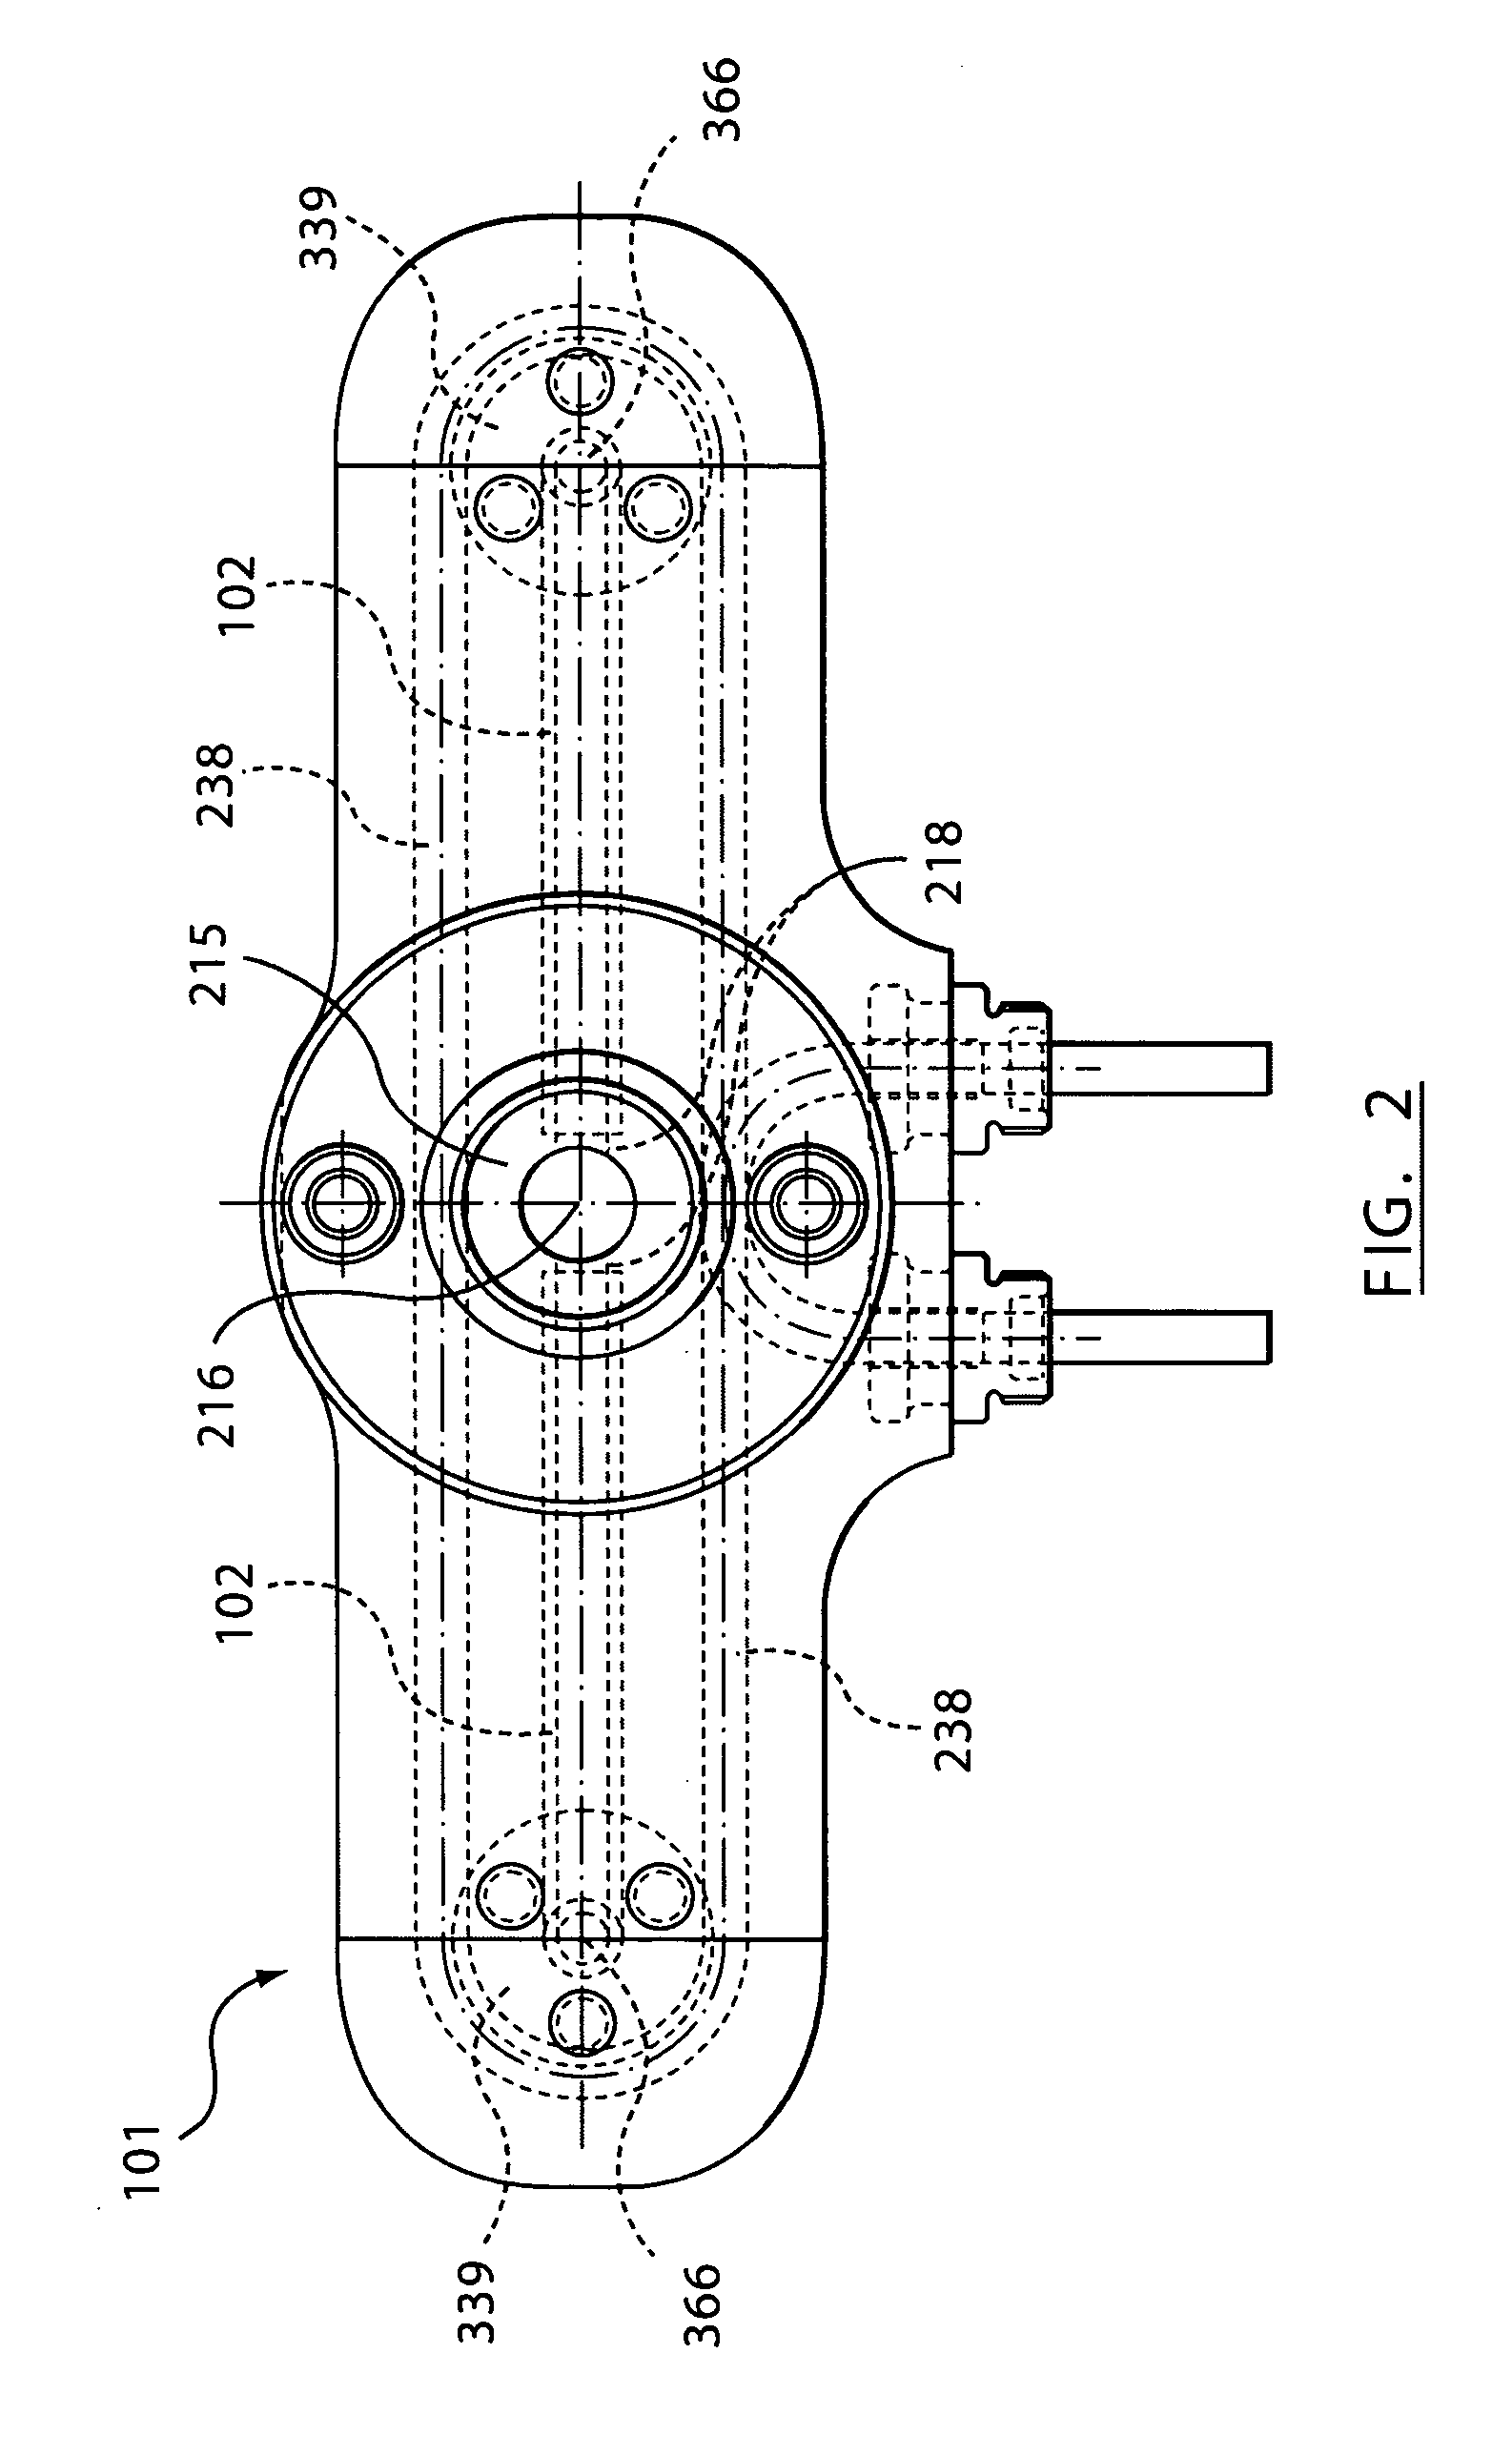 patent us20040191358 - cast hot runner manifold for injection molding apparatus